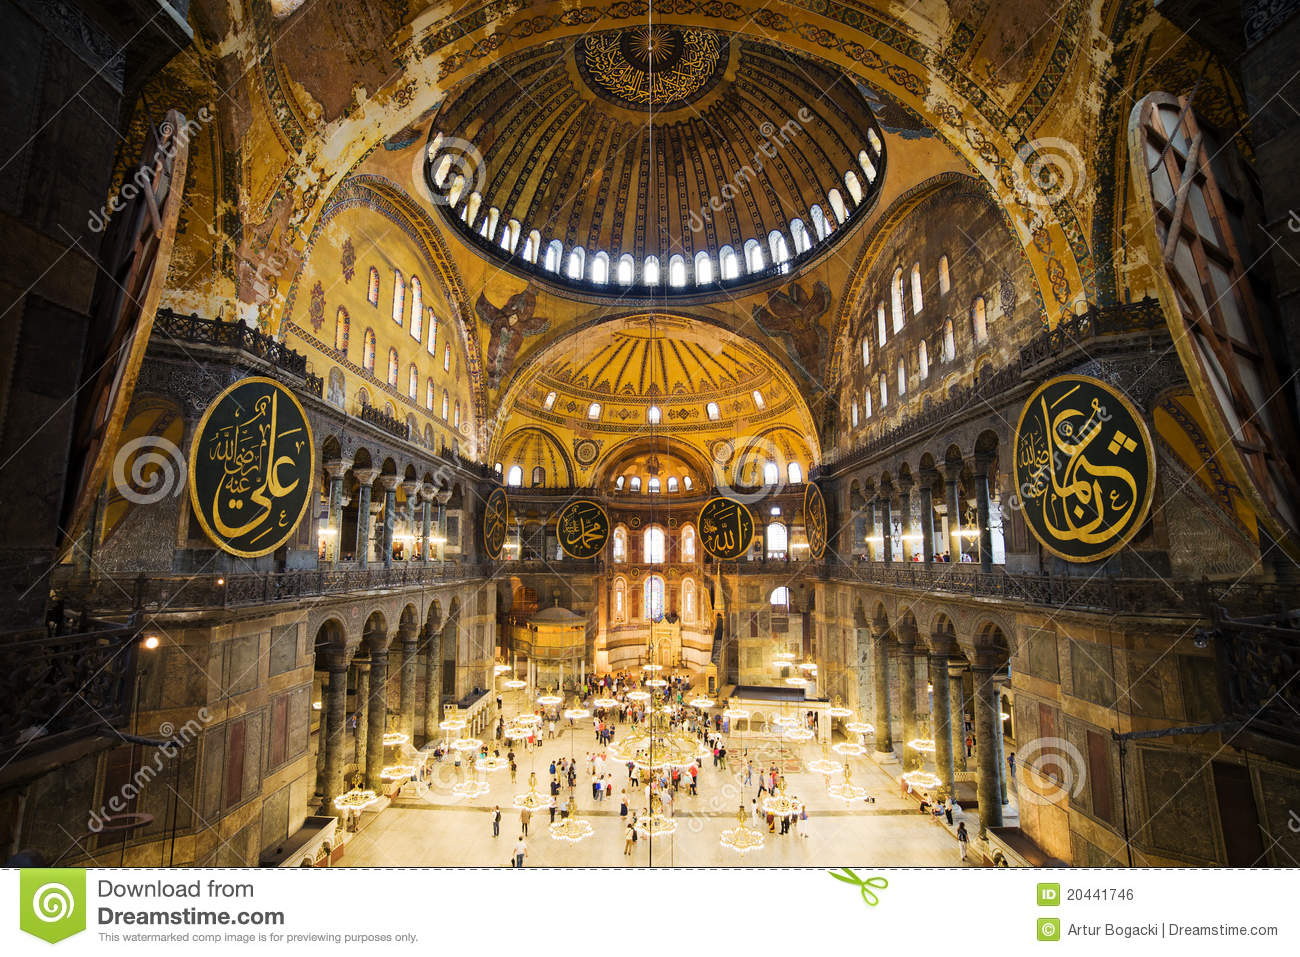 File:Inside the Church of Hagia Sophia.jpg - Wikimedia Commons